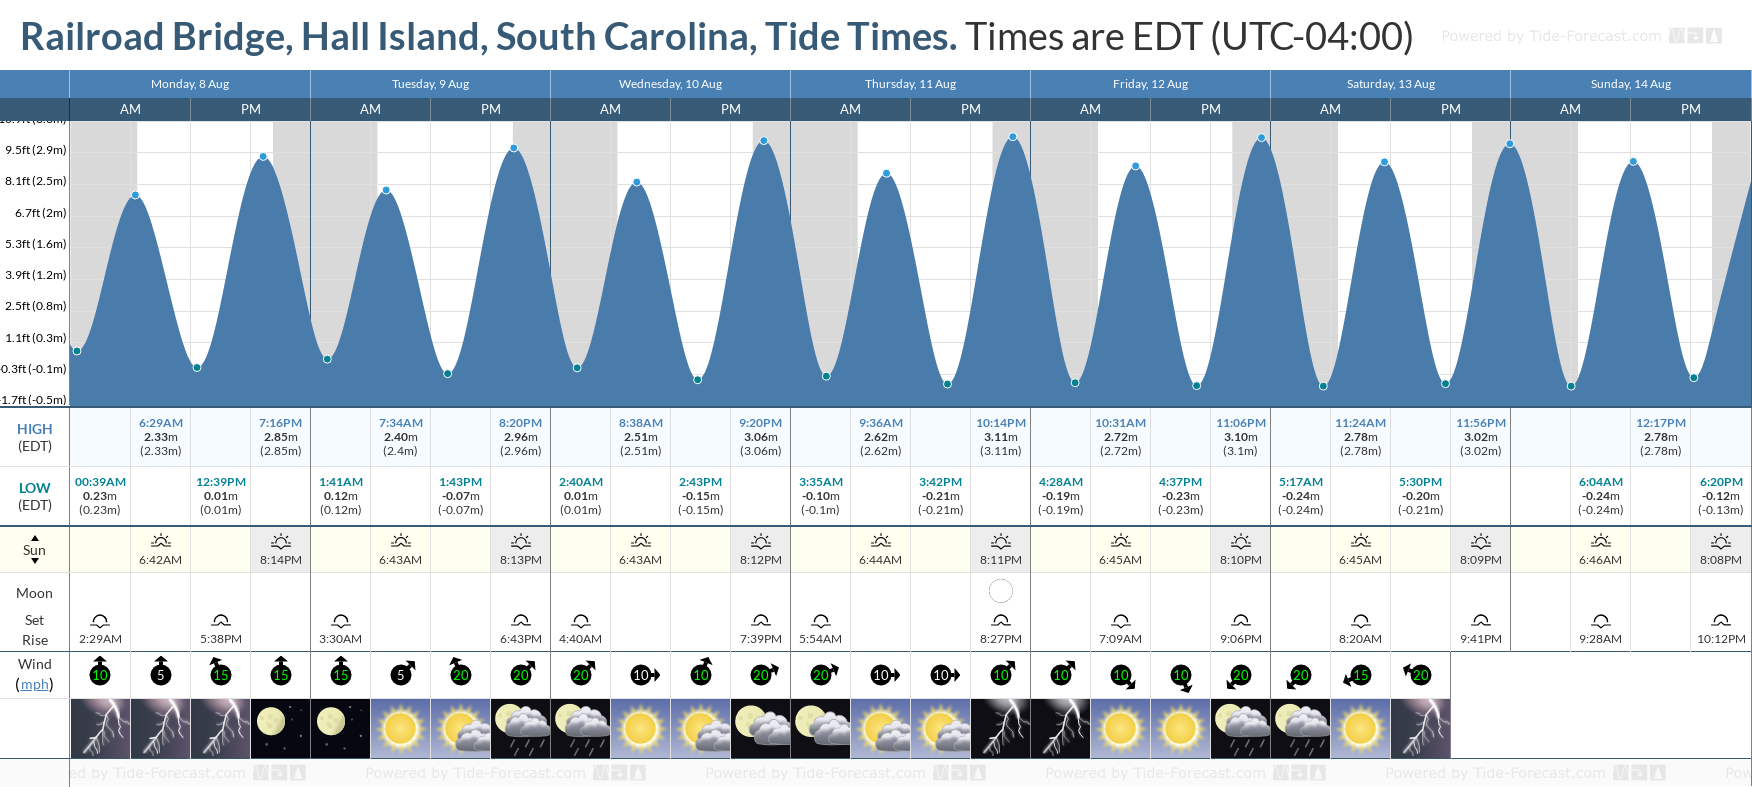 Railroad Bridge, Hall Island, South Carolina Tide Chart including high and low tide tide times for the next 7 days